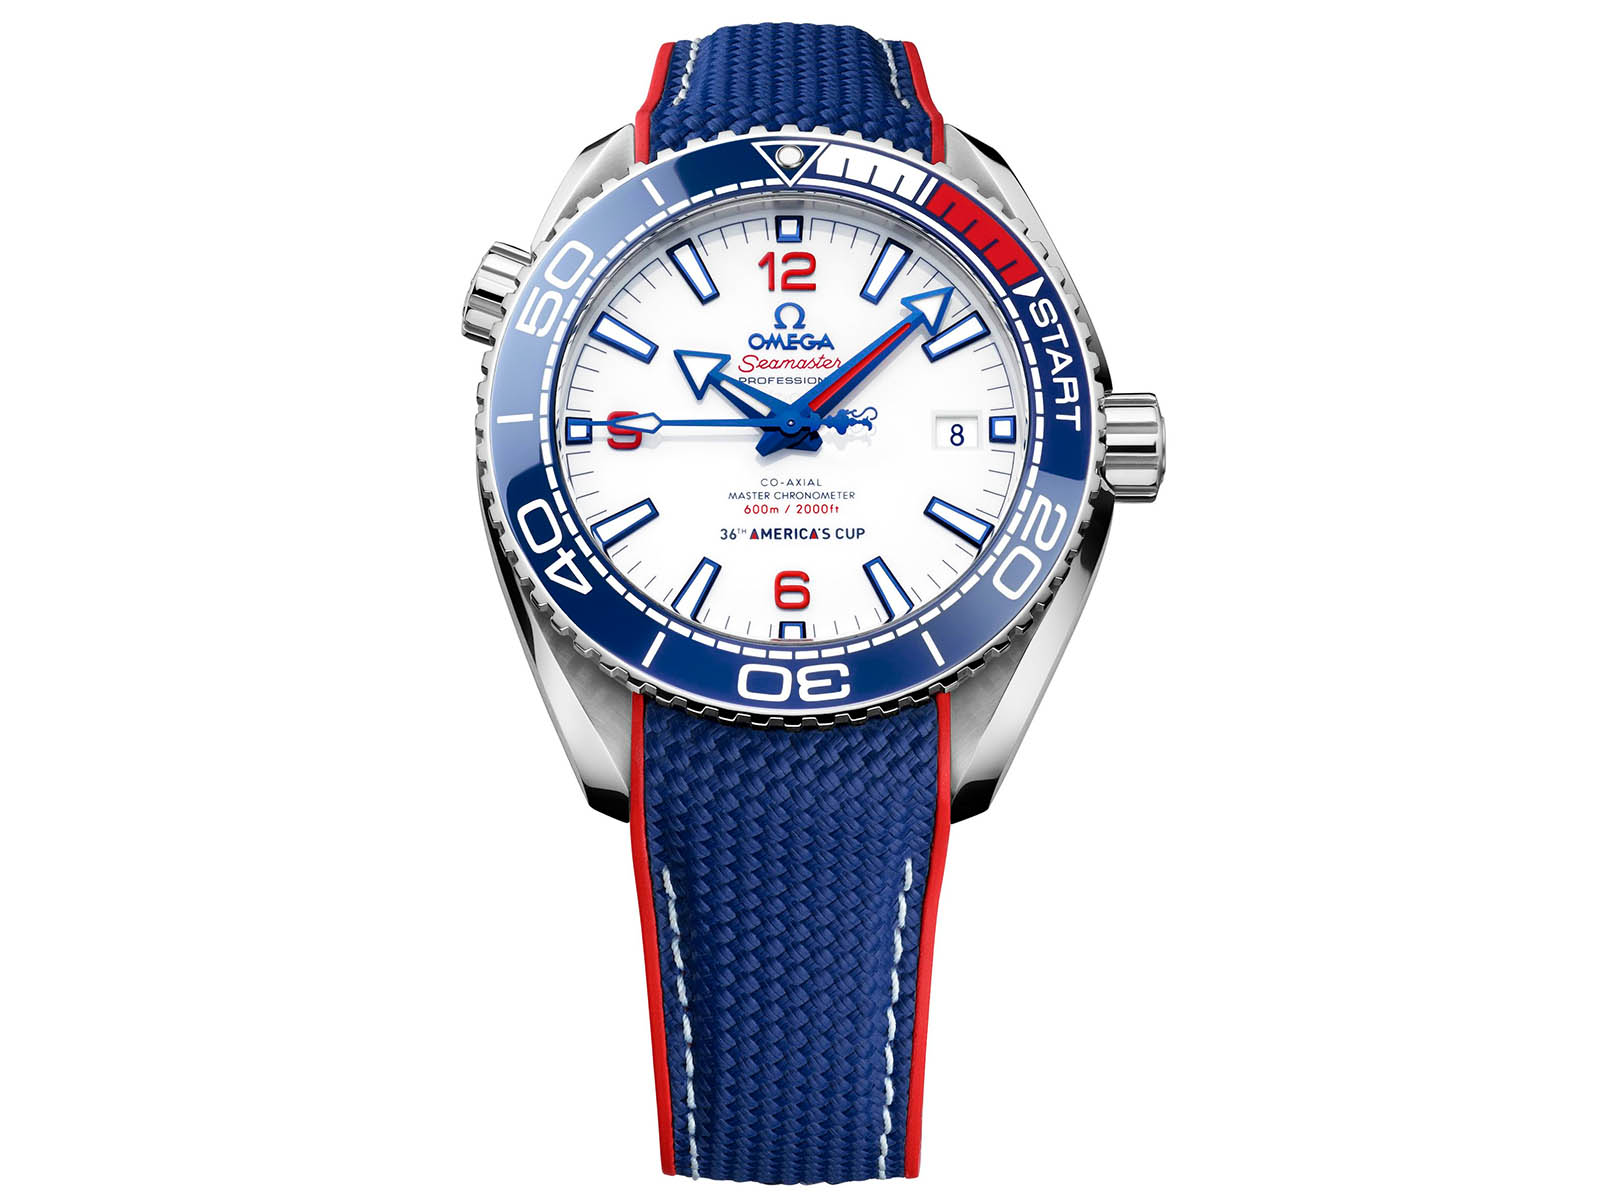 215-32-43-21-04-001-omega-seamaster-planet-ocean-36th-america-s-cup-5.jpg